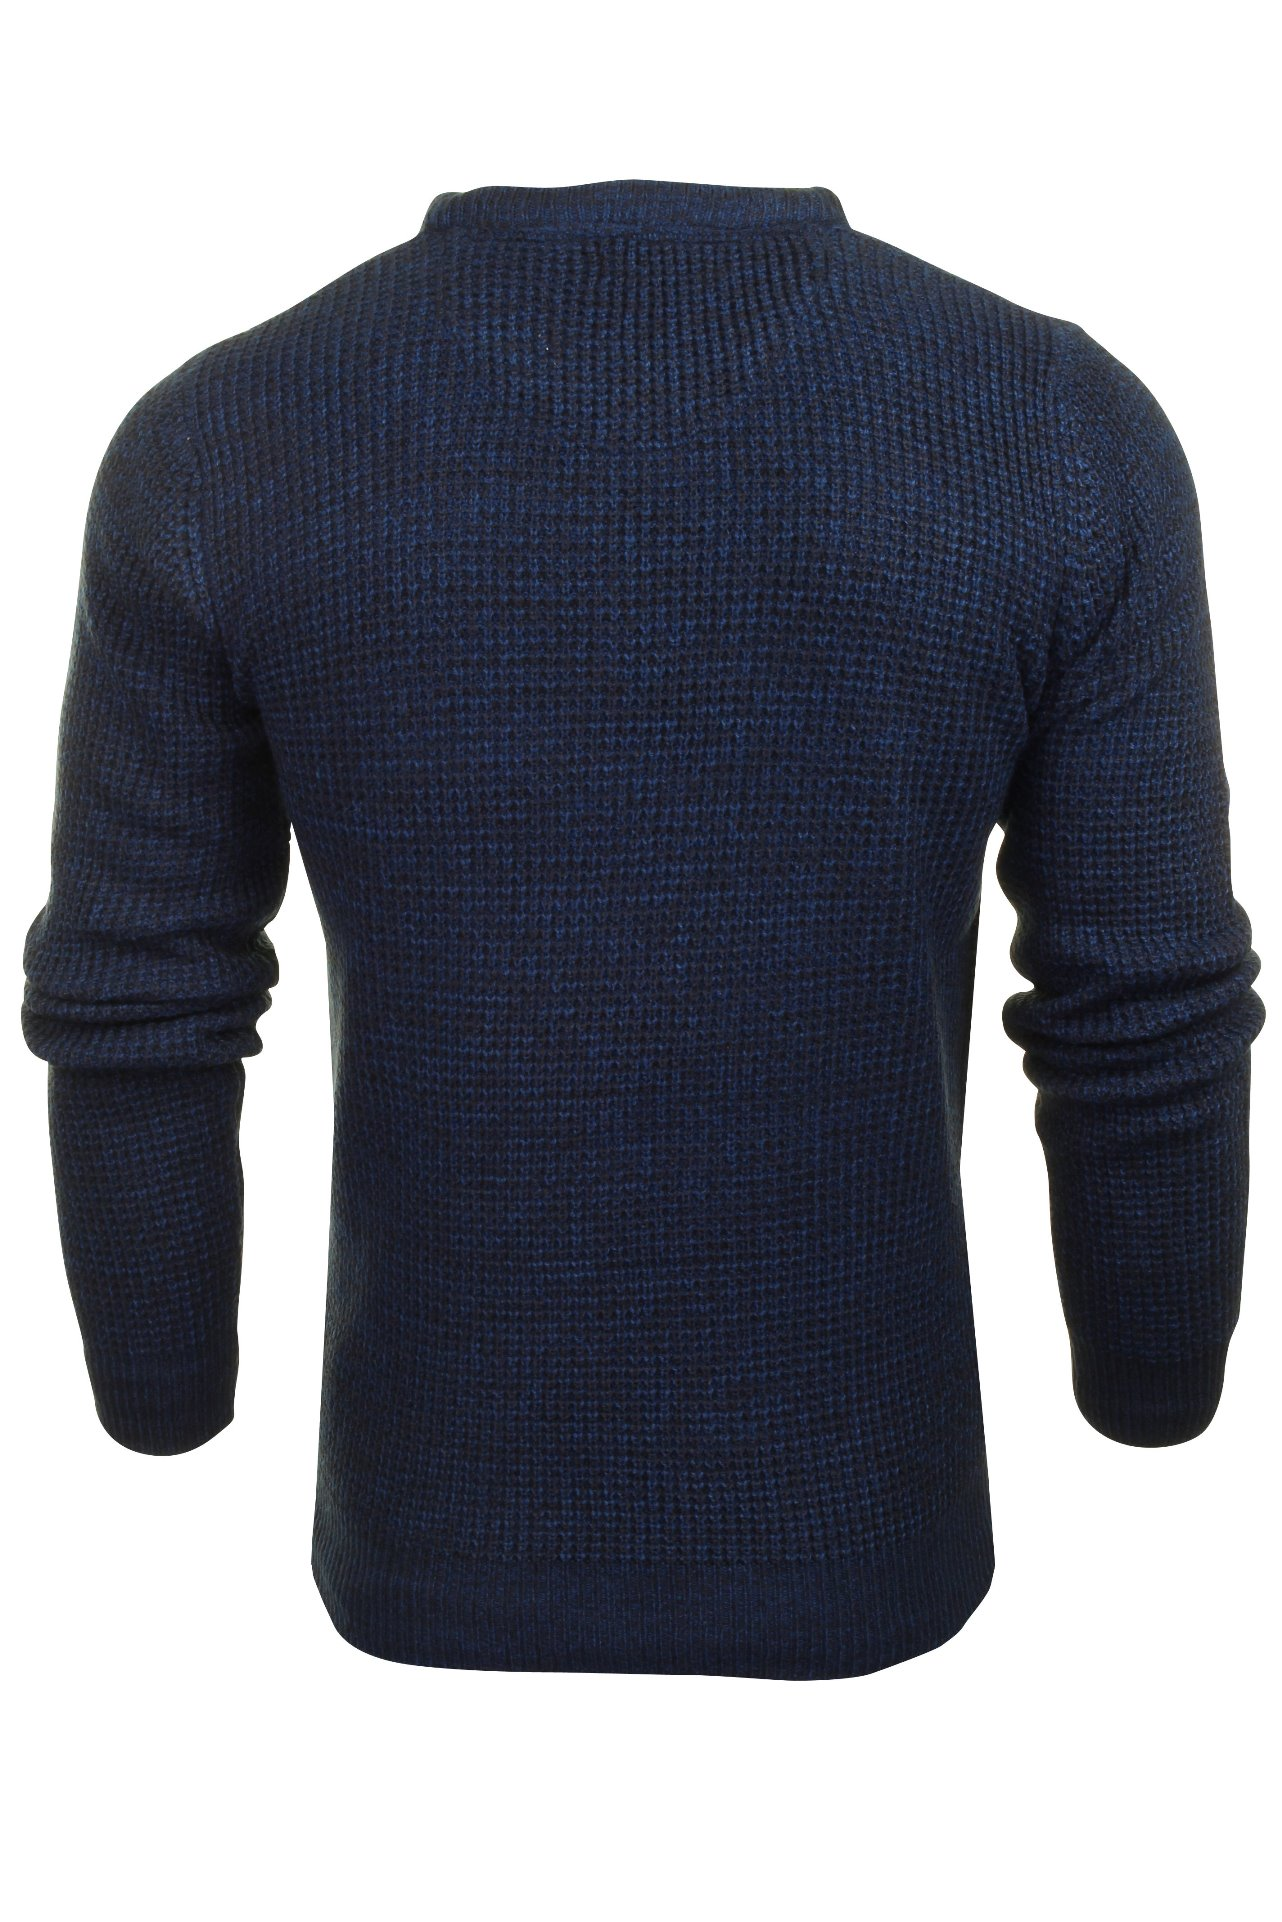 Brave-Soul-039-Maoism-039-Mens-Cable-Knit-Jumper thumbnail 11